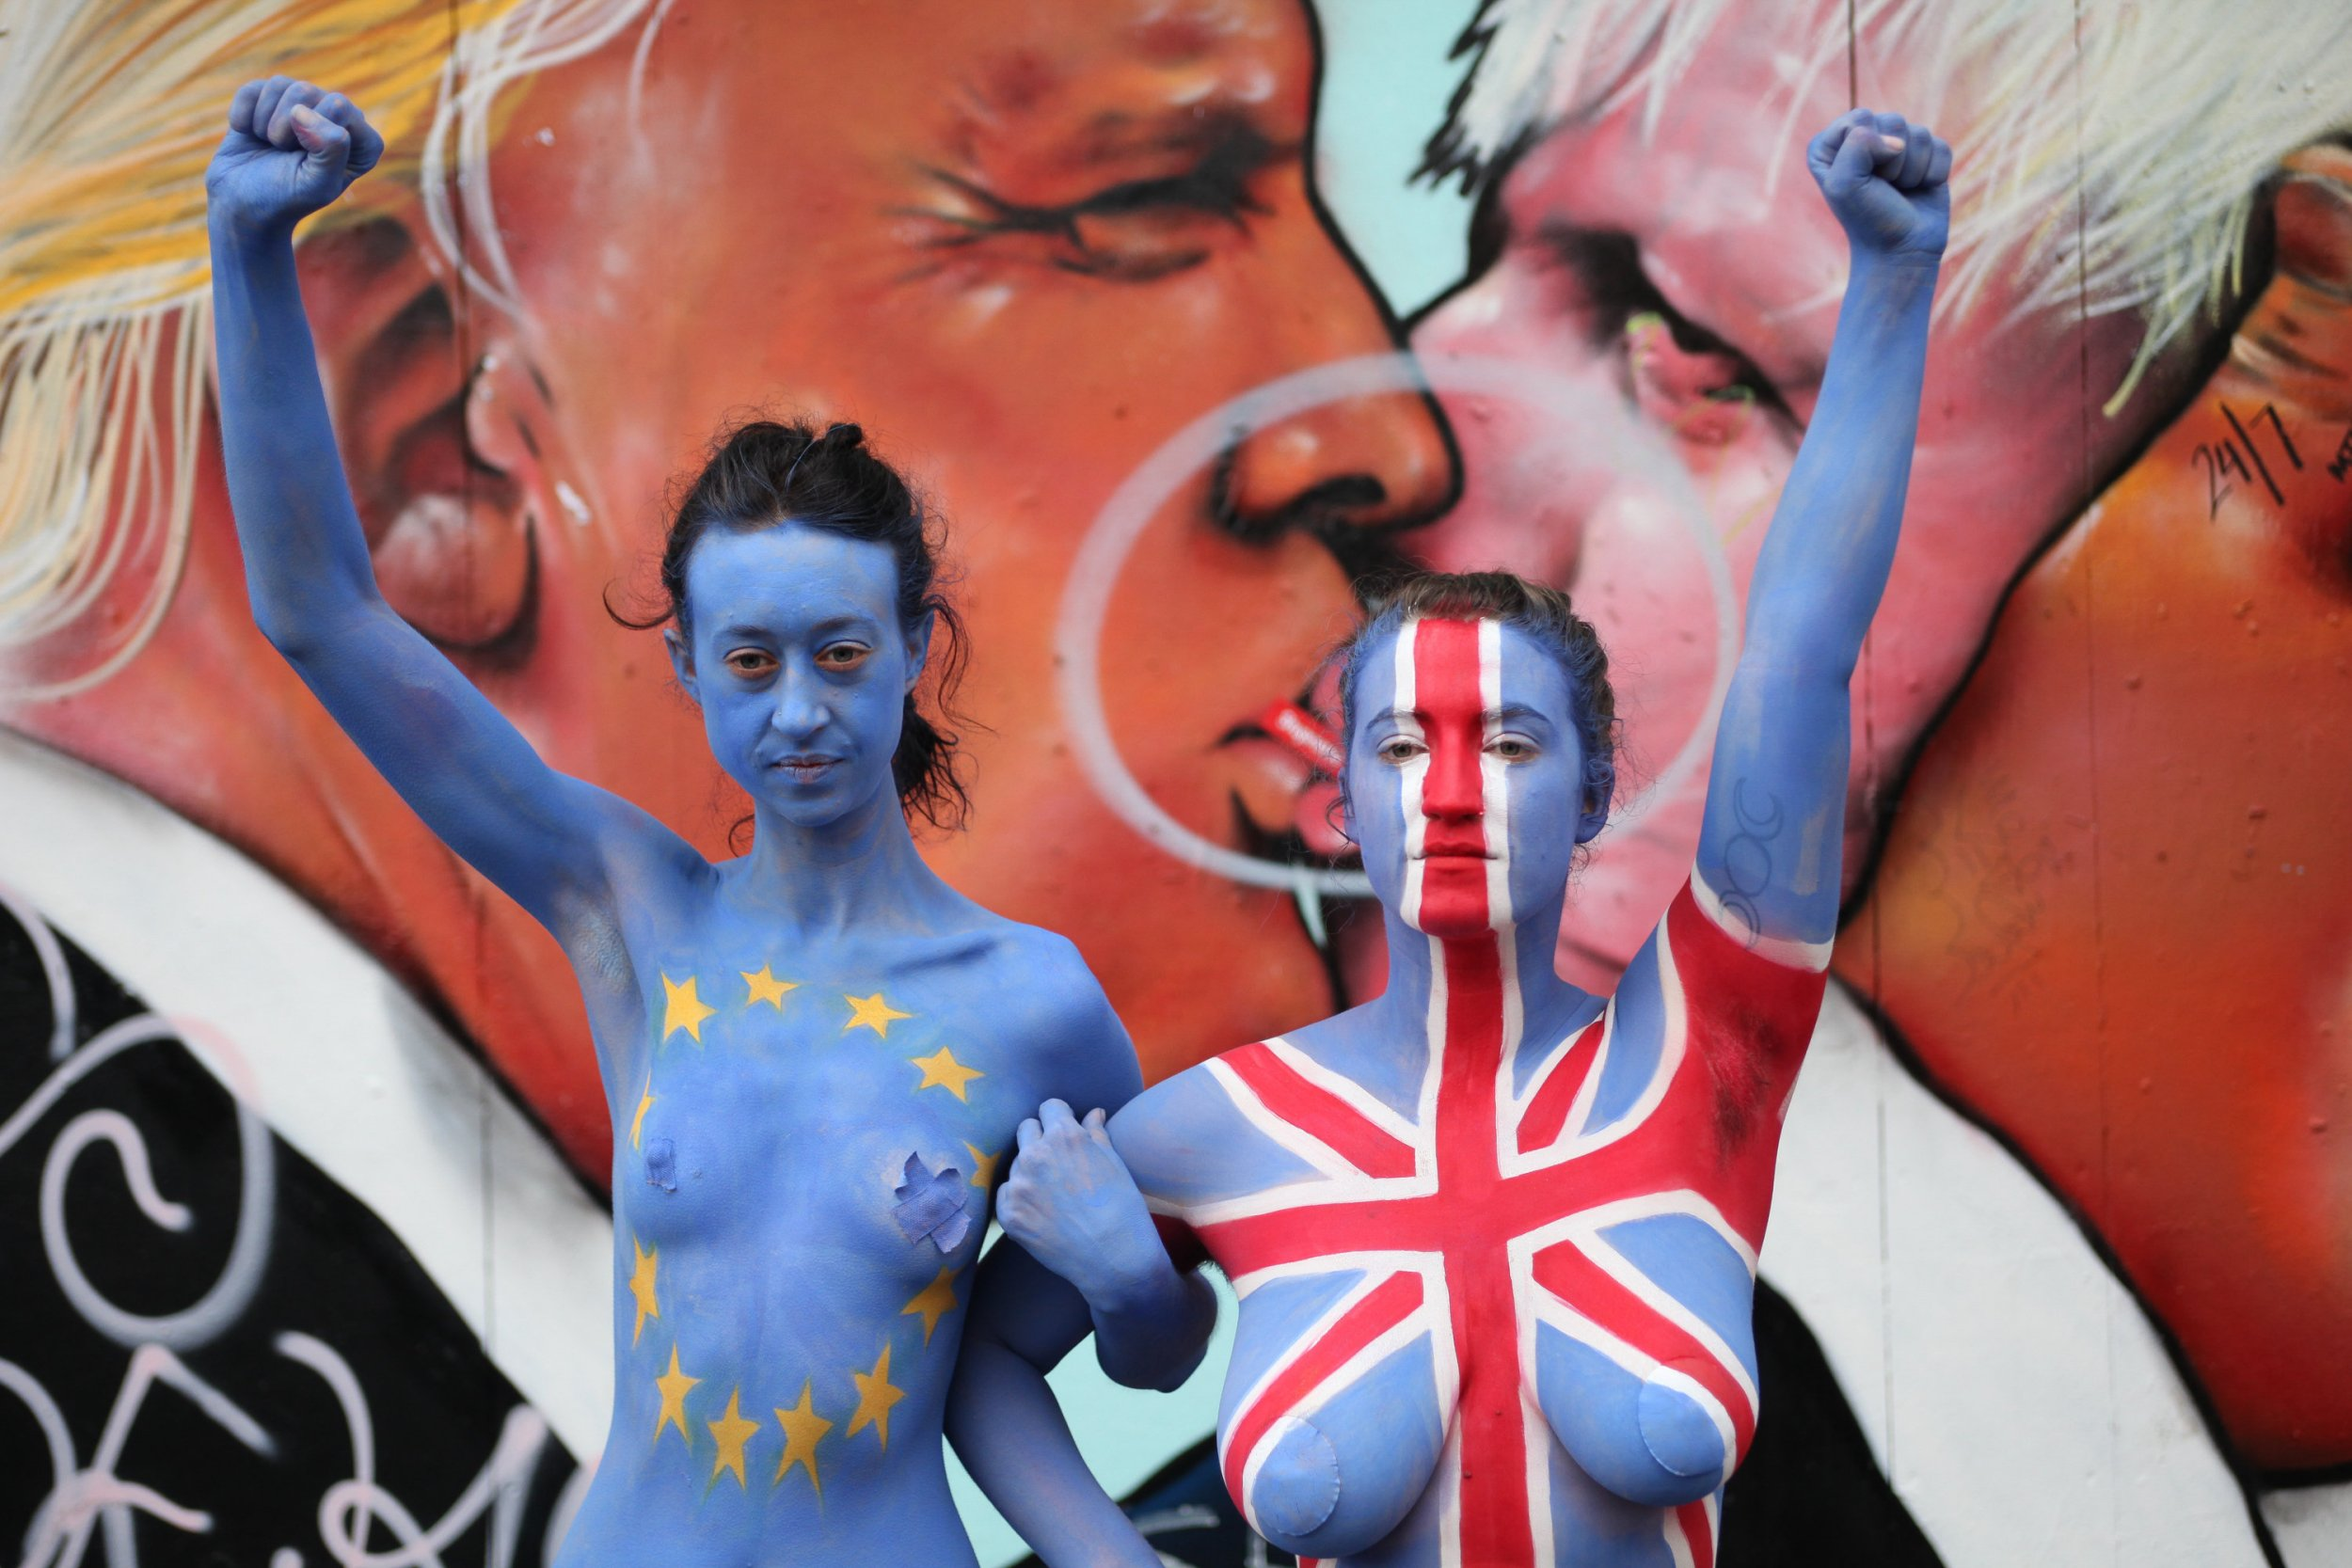 "Sibi Moore(EU) and Claire Green(Union Jack) Strip down to raise awarness for remain in the UE campaign. Bristol, britain. June 19 2016. See SWNS story SWNAKED; Two 'Remain' campaigners walked around a busy city centre yesterday (Sun) while completely NAKED in a bid to ""strip down the argument for Brexit"". Sibi Moore and Claire Green staged the protest to ""expose the effects"" leaving the EU would have on future generations in a last ditch attempt to persuade vote to stay. The pair set off from Stokes Croft, Bristol, at around 2.30pm and walked to the bustling Harbourside - Sibi painted as a Union Jack and Claire decorated as an EU flag. They handed out leaflets as they made their way through the city with nothing but lashings of blue body paint and skimpy knickers to protect their dignity. Sibi, 20, said: ""One of the reasons we wanted to do this is because there has been a lot of focus on the various political parties and what they are saying."